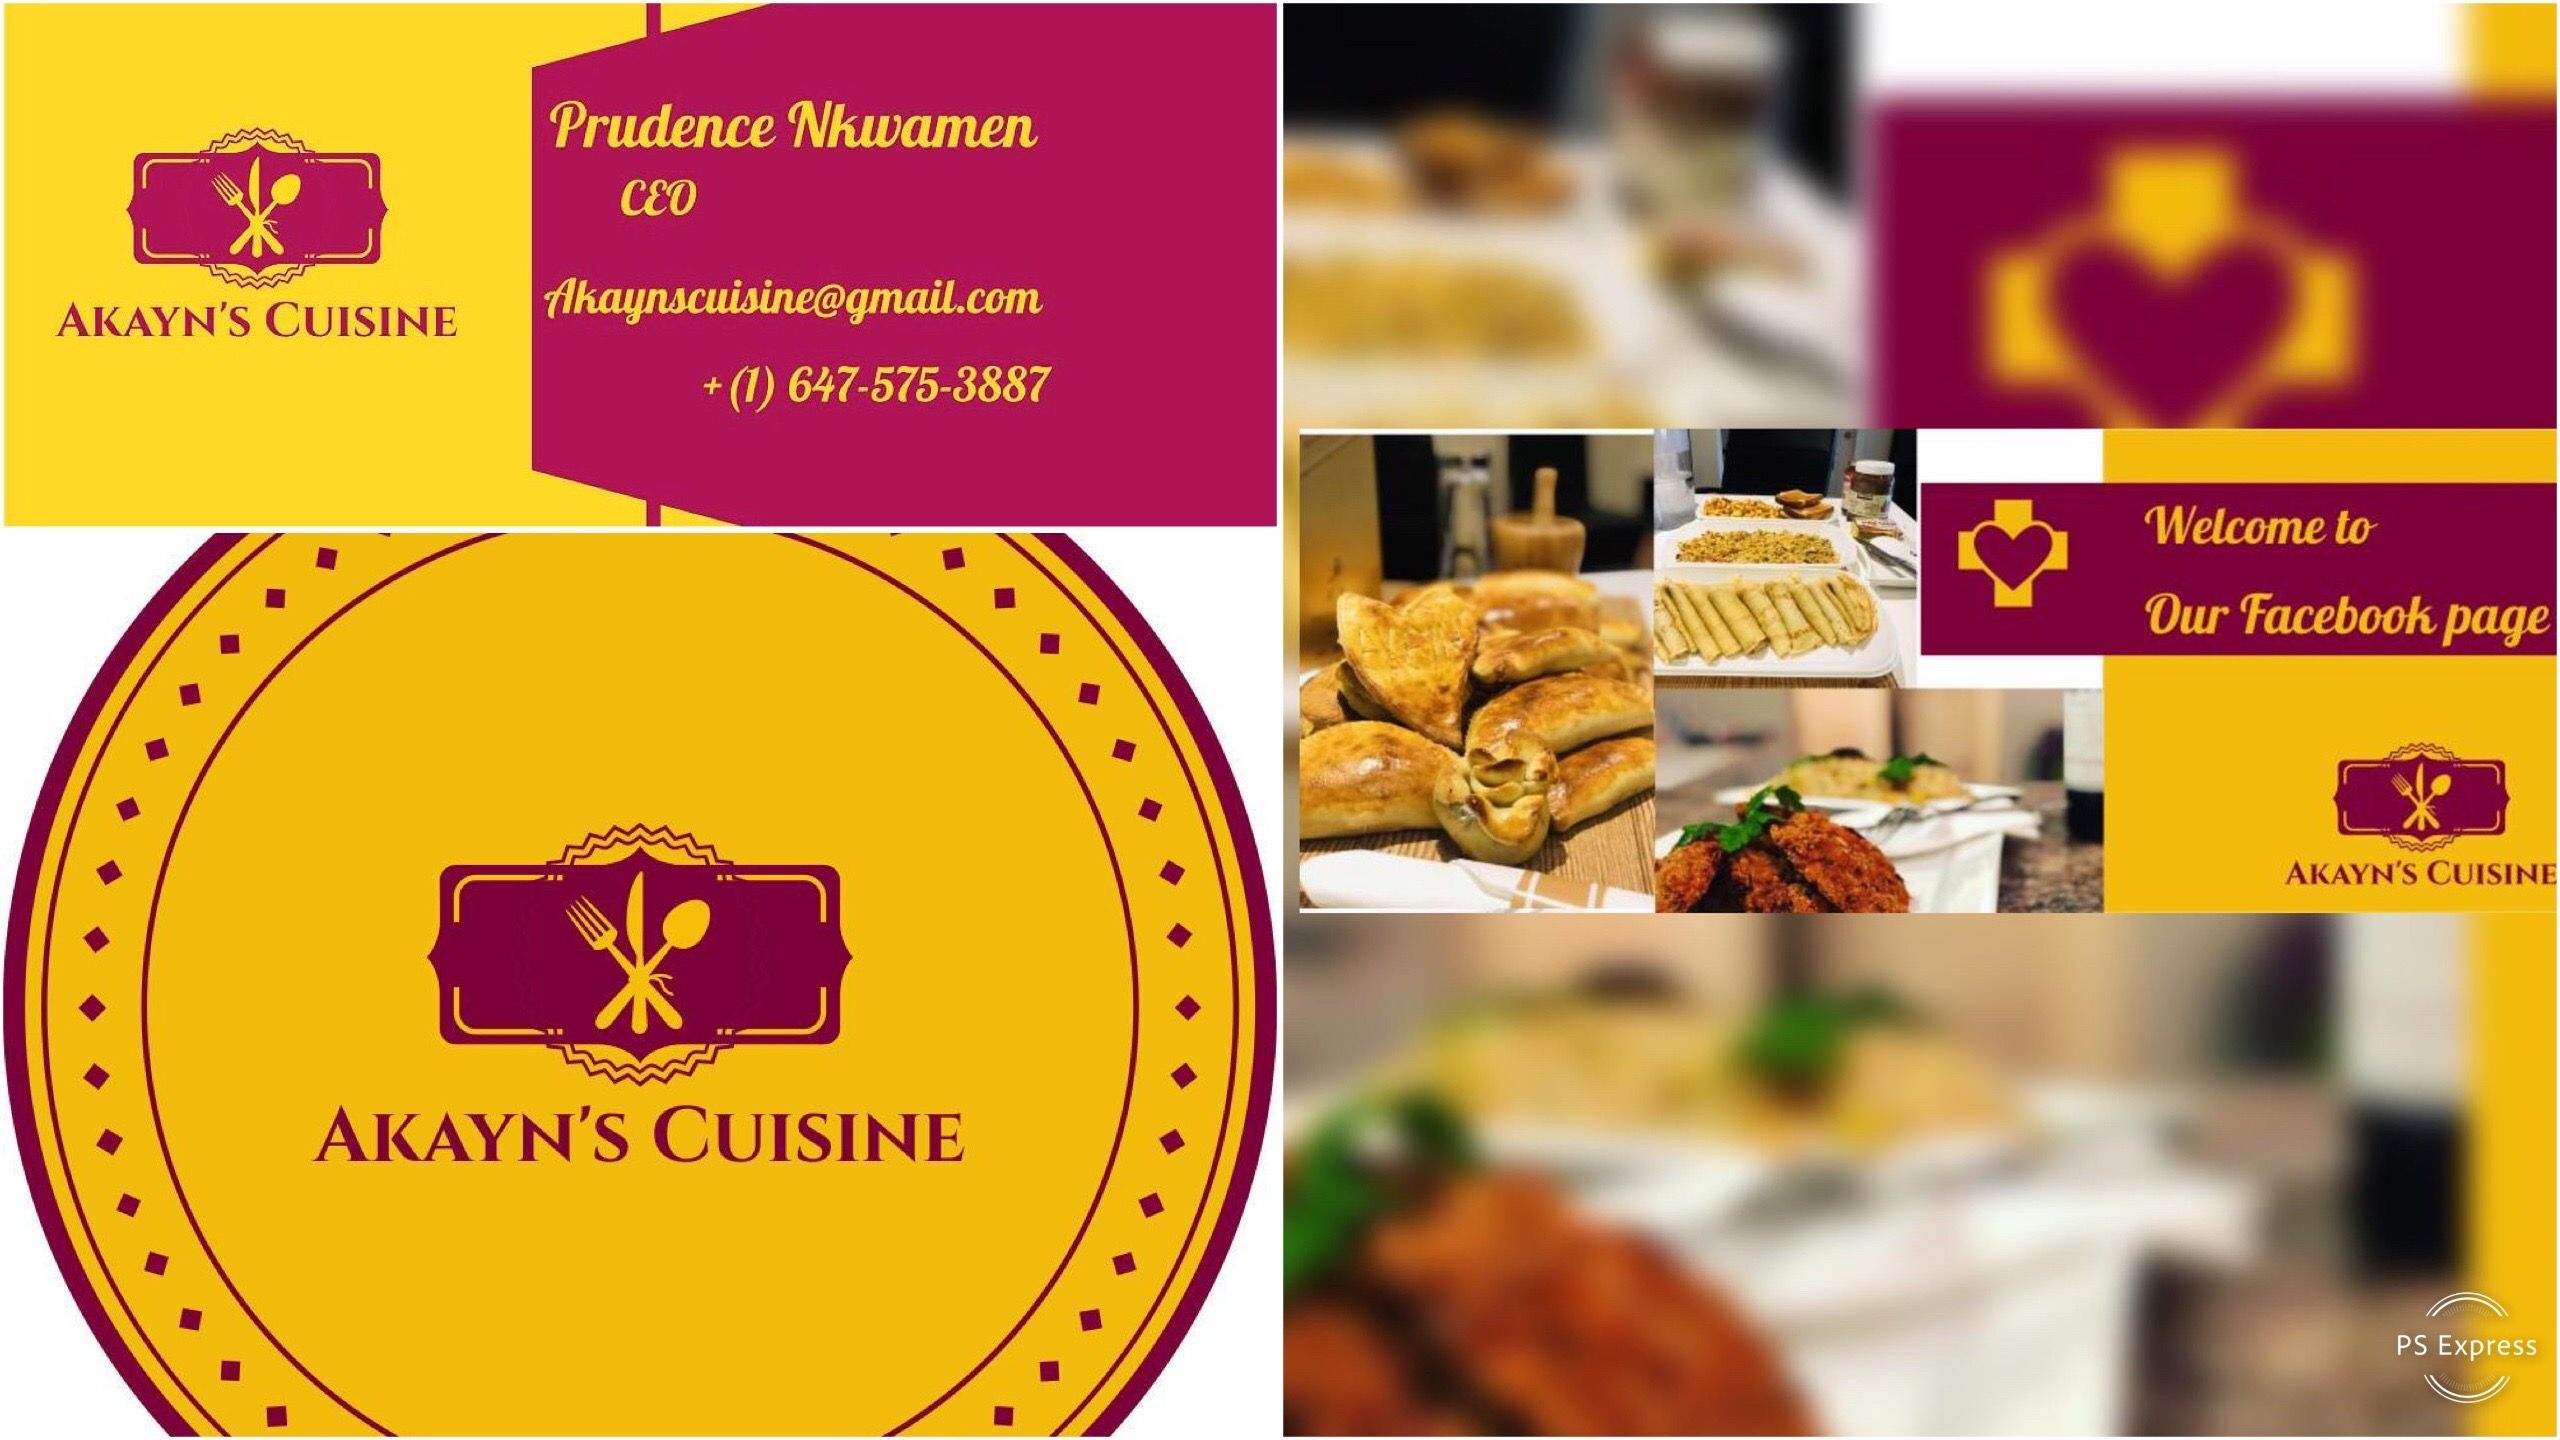 KINGDOM GRACE PROUD BUSINESS SPONSOR - AKAYN'S CUISINE IN TORONTO, ON CANADA